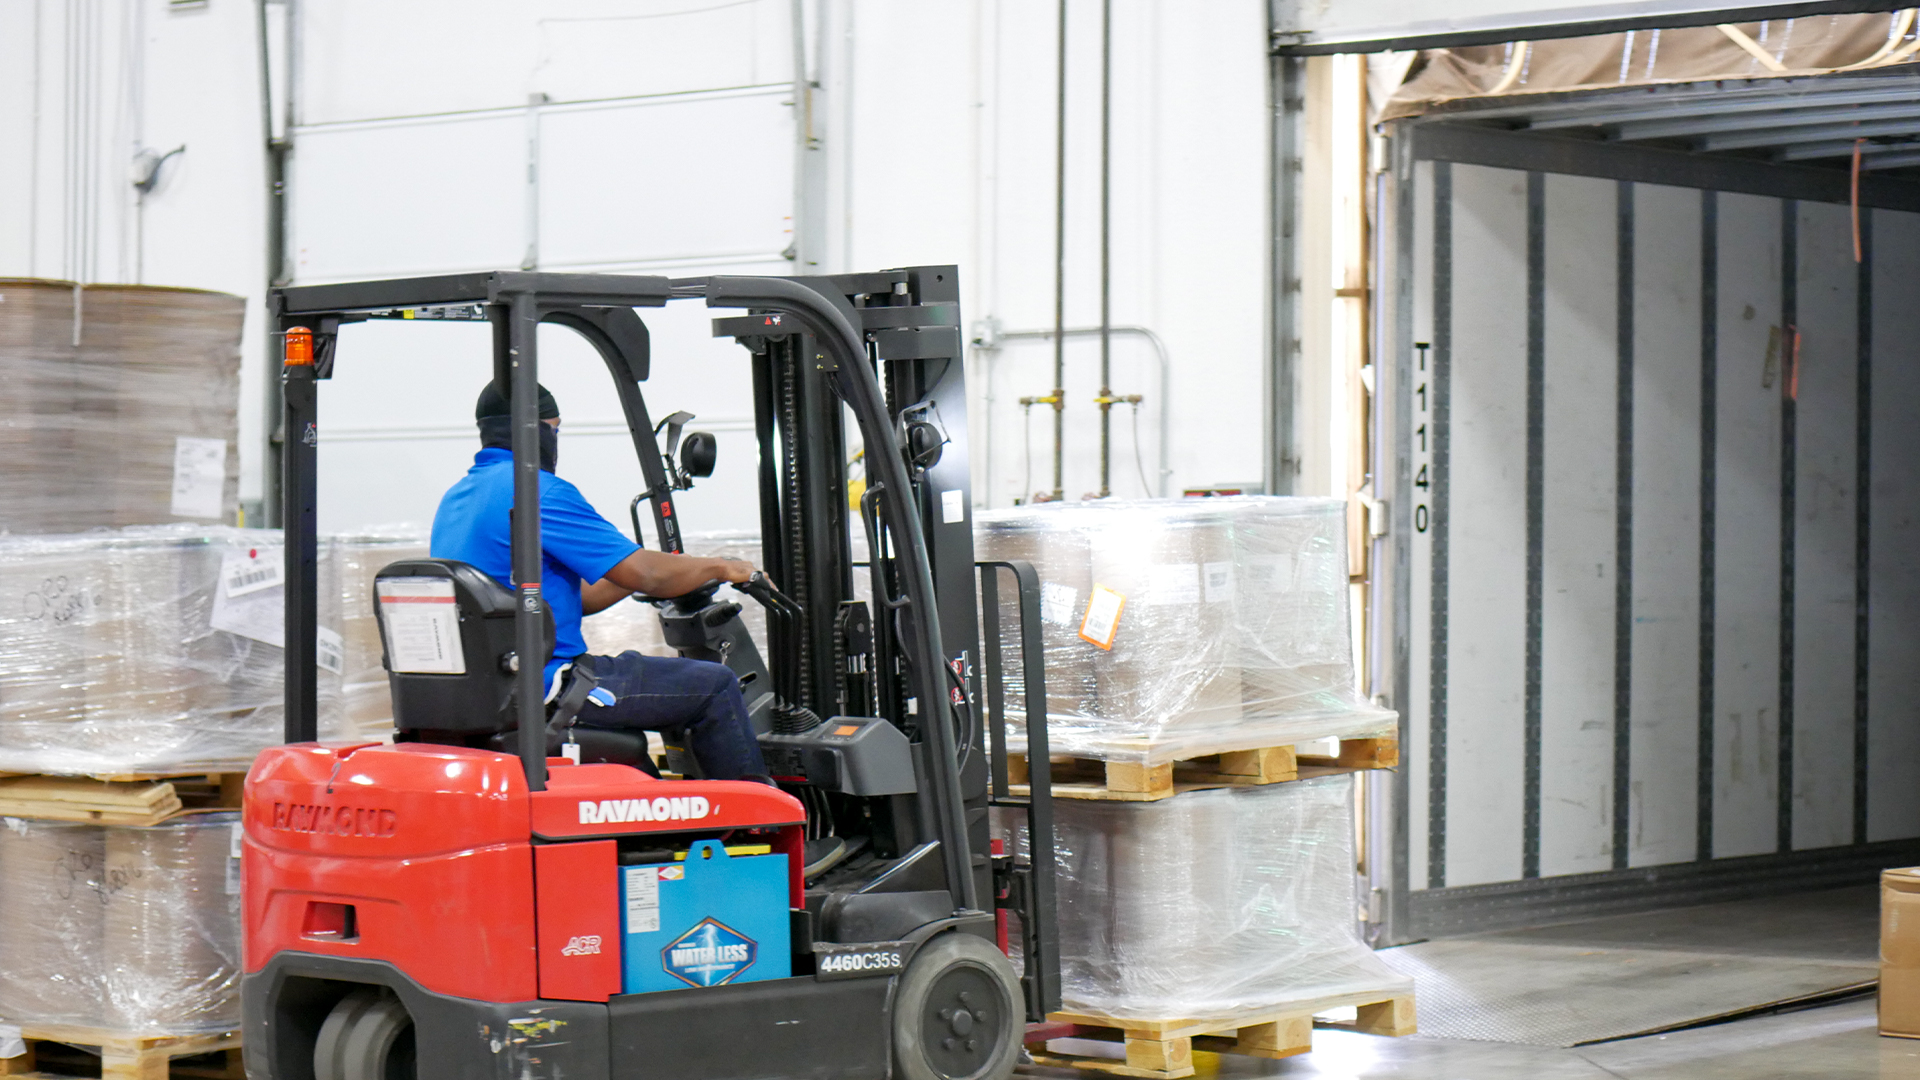 Warehouse Technician loads truck with API product.